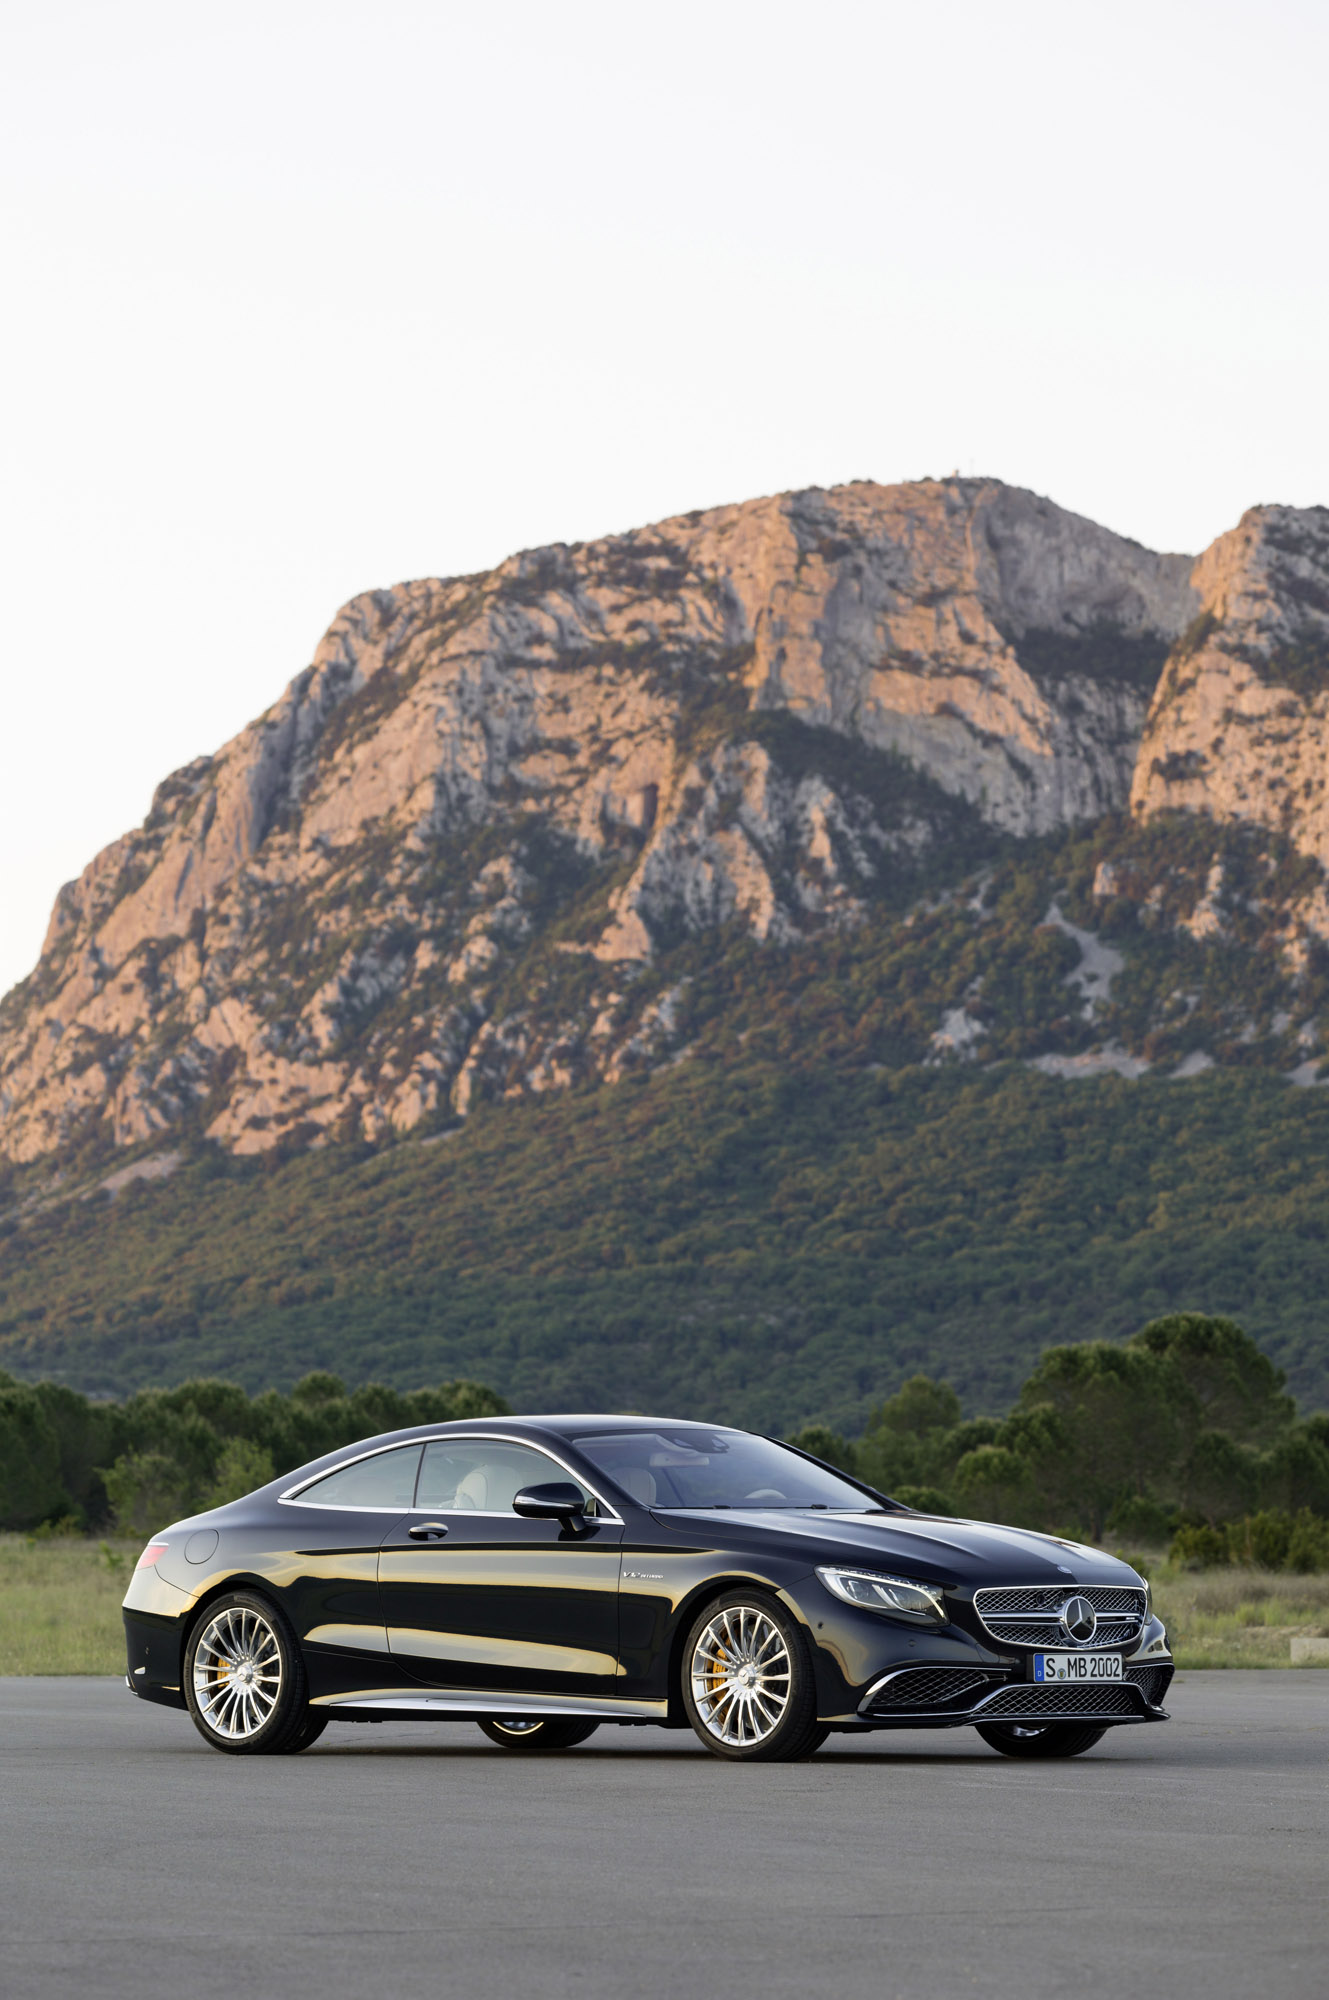 2014 Mercedes Benz S65 Amg Coupe Price 244 009